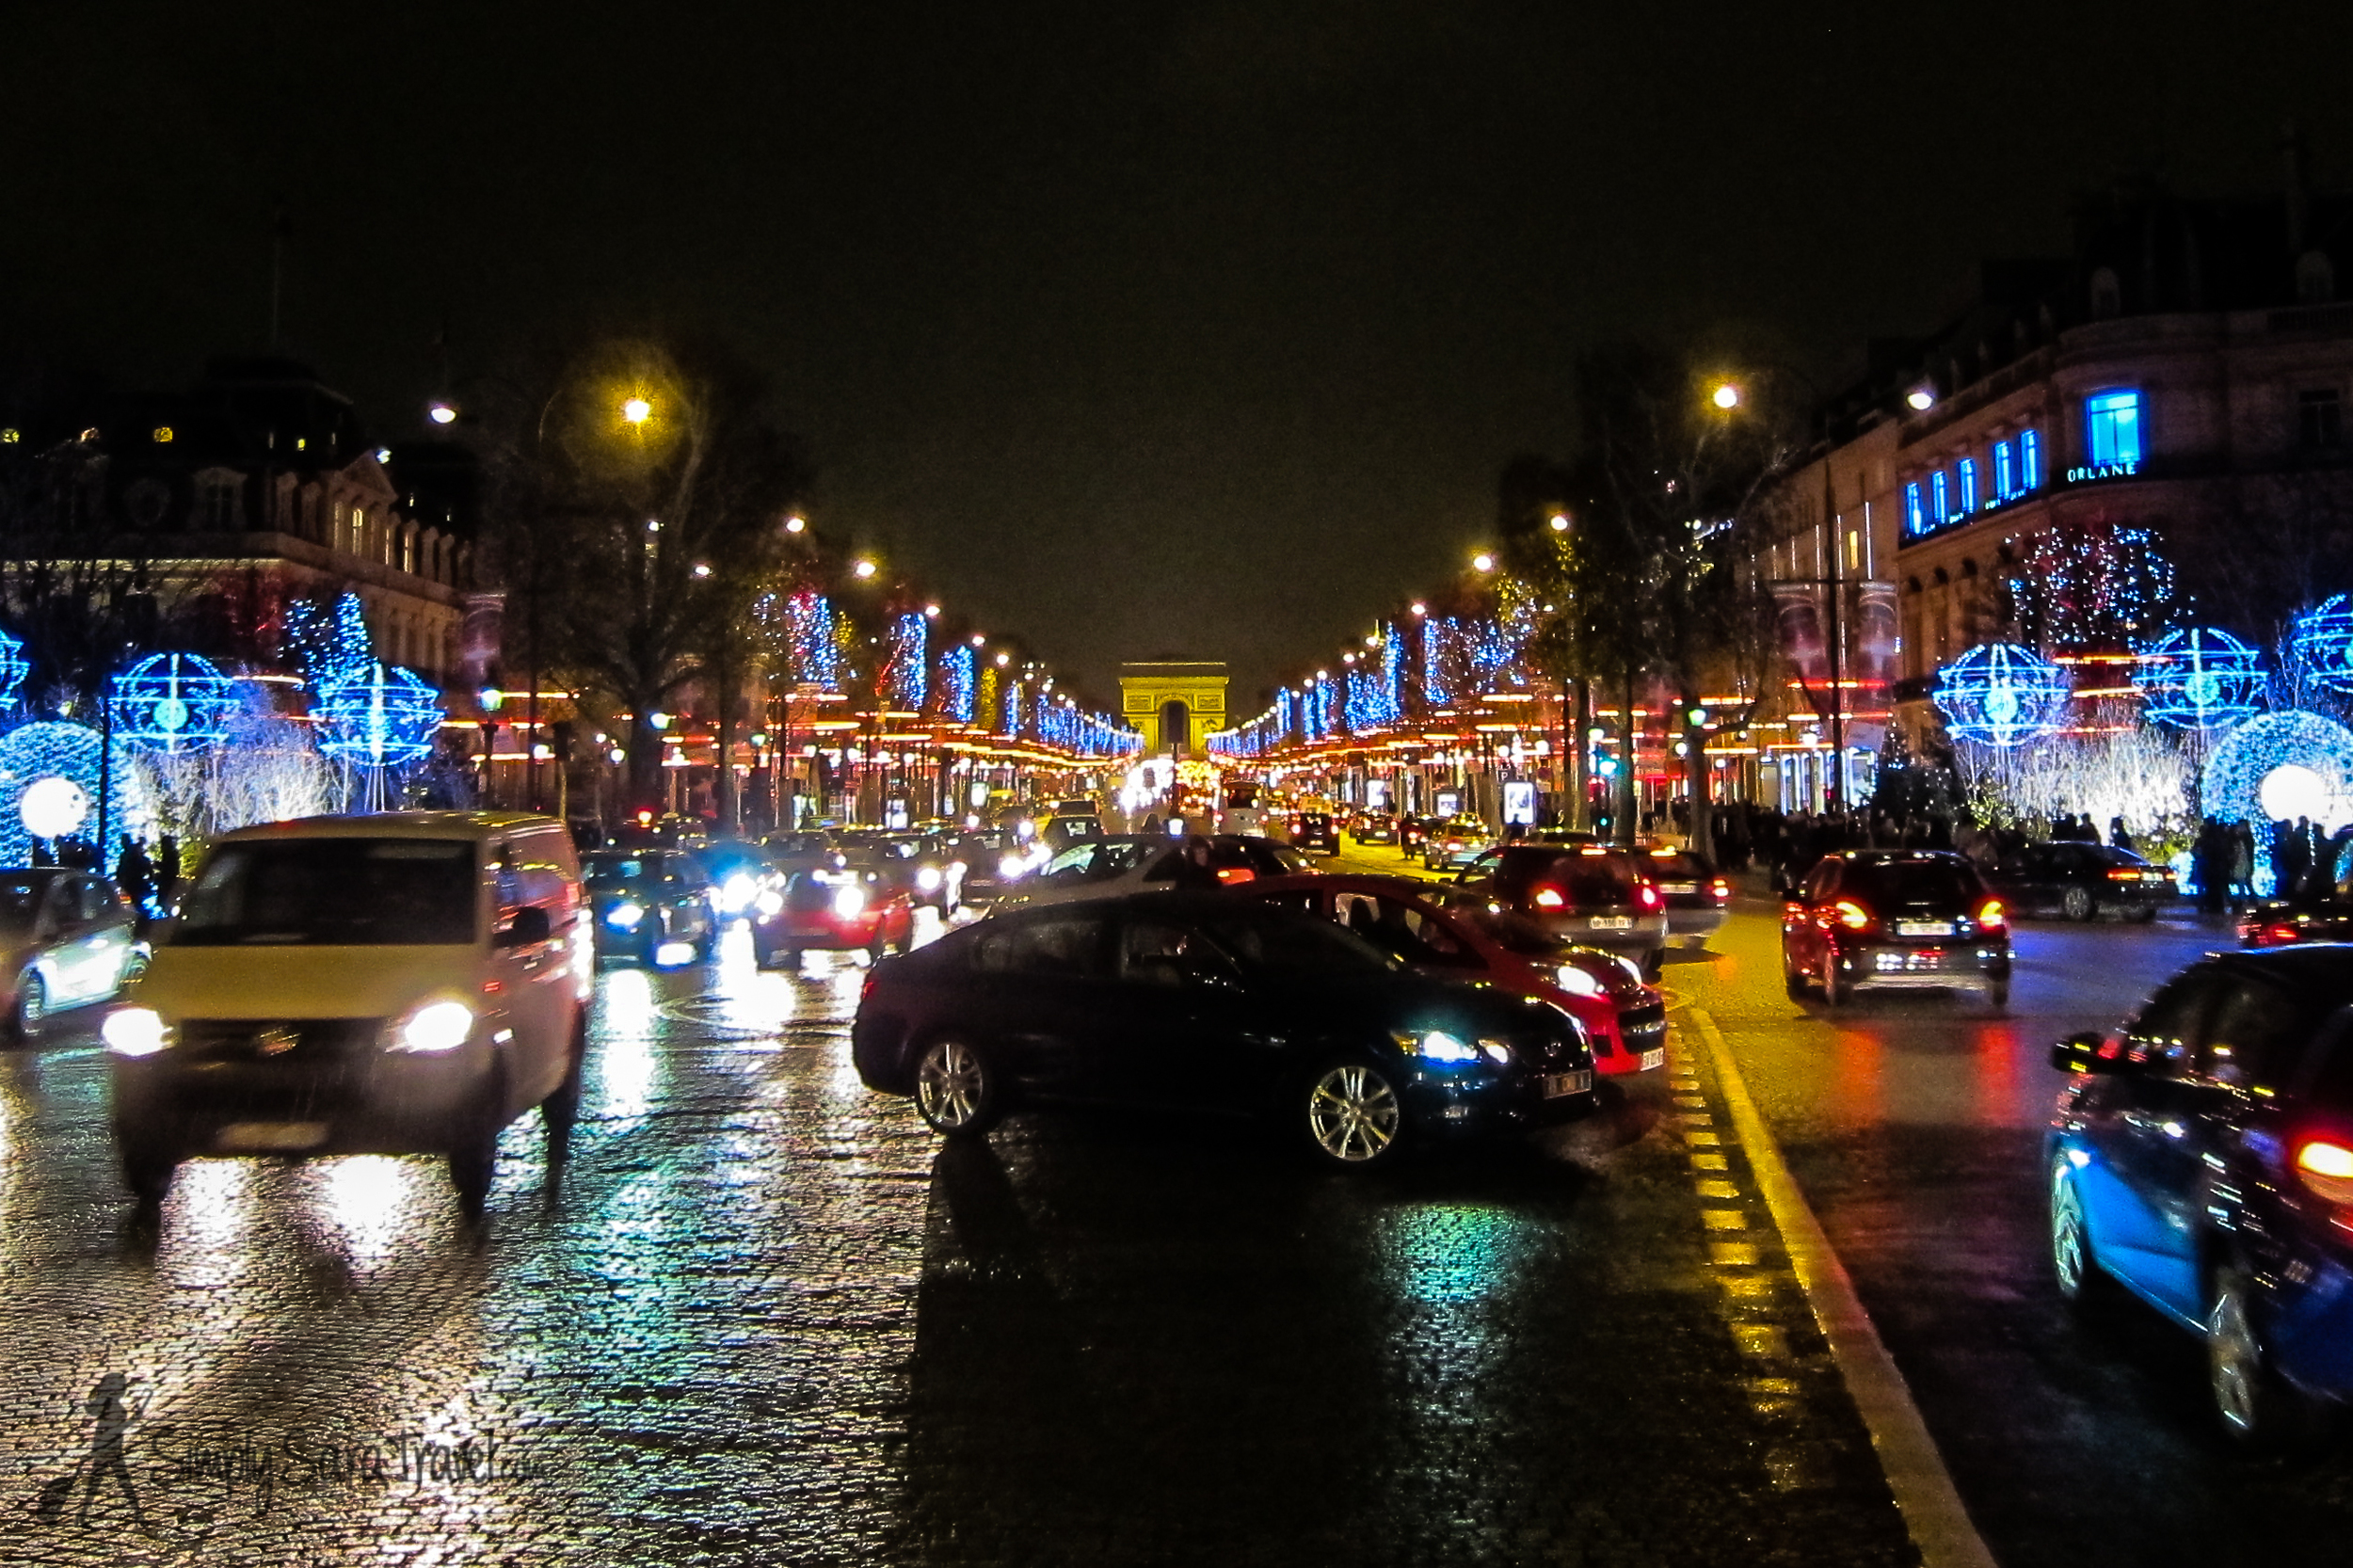 Even traffic on theChamps-Élysées looks cheerier with the street lined by lights and markets.